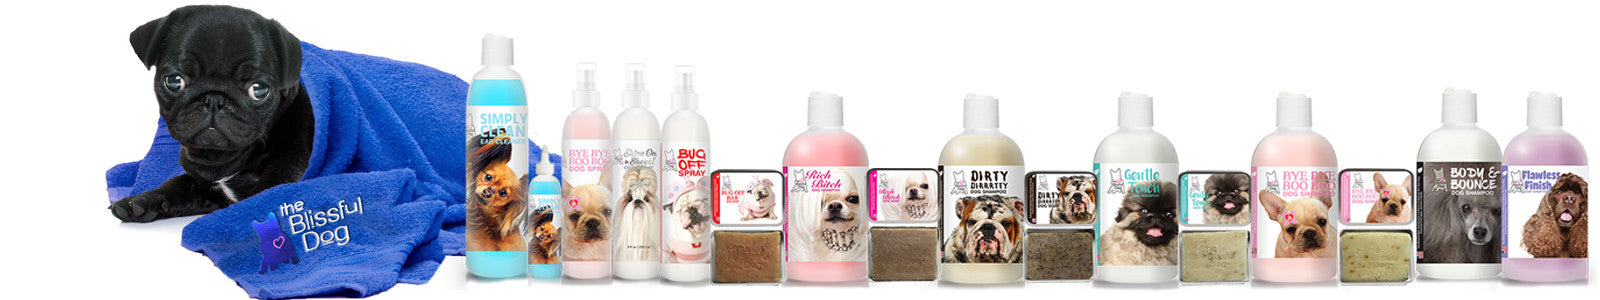 puppy soap tearless